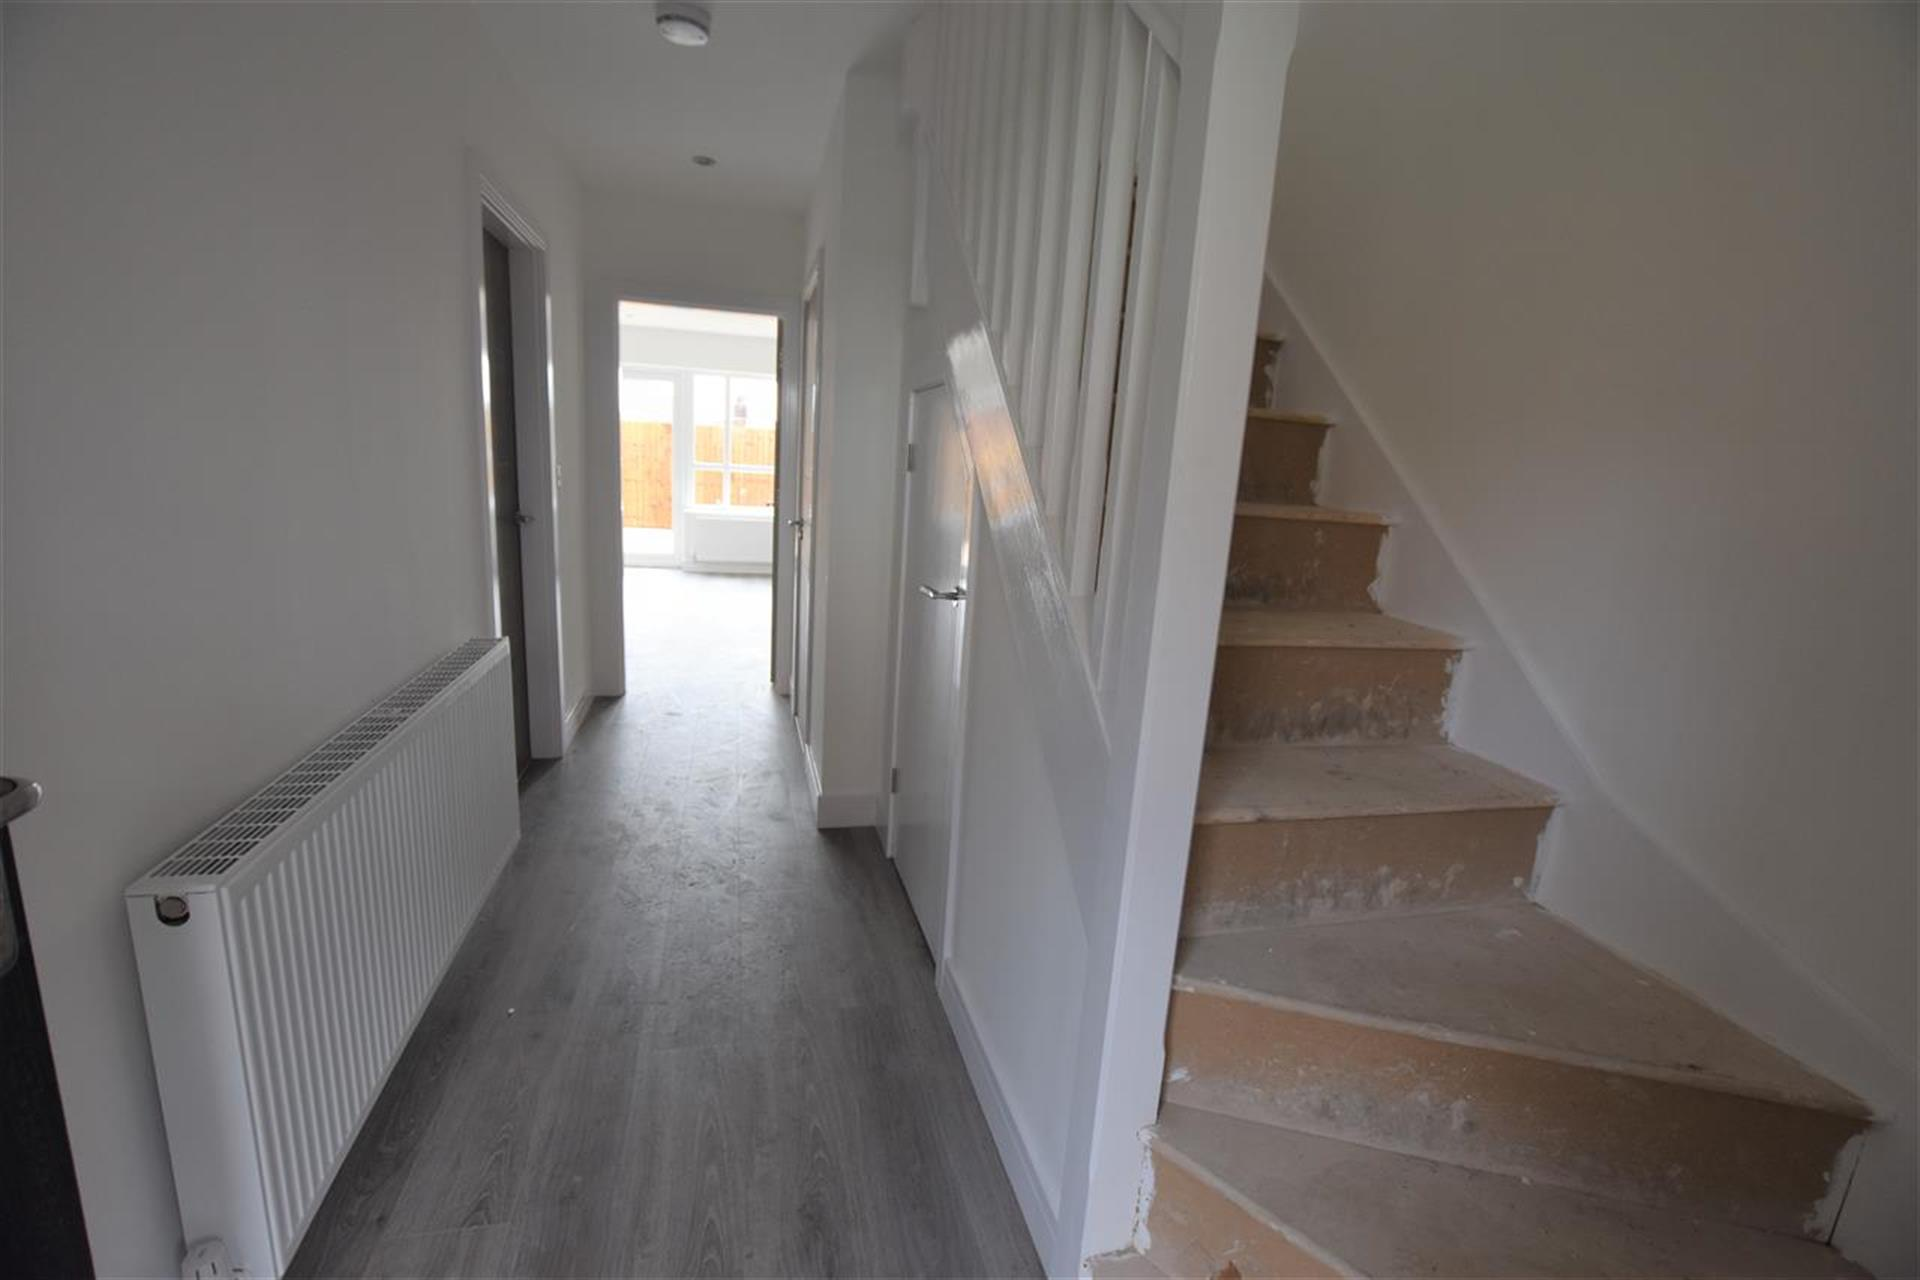 3 Bedroom House For Sale - Stairs to the First Floor